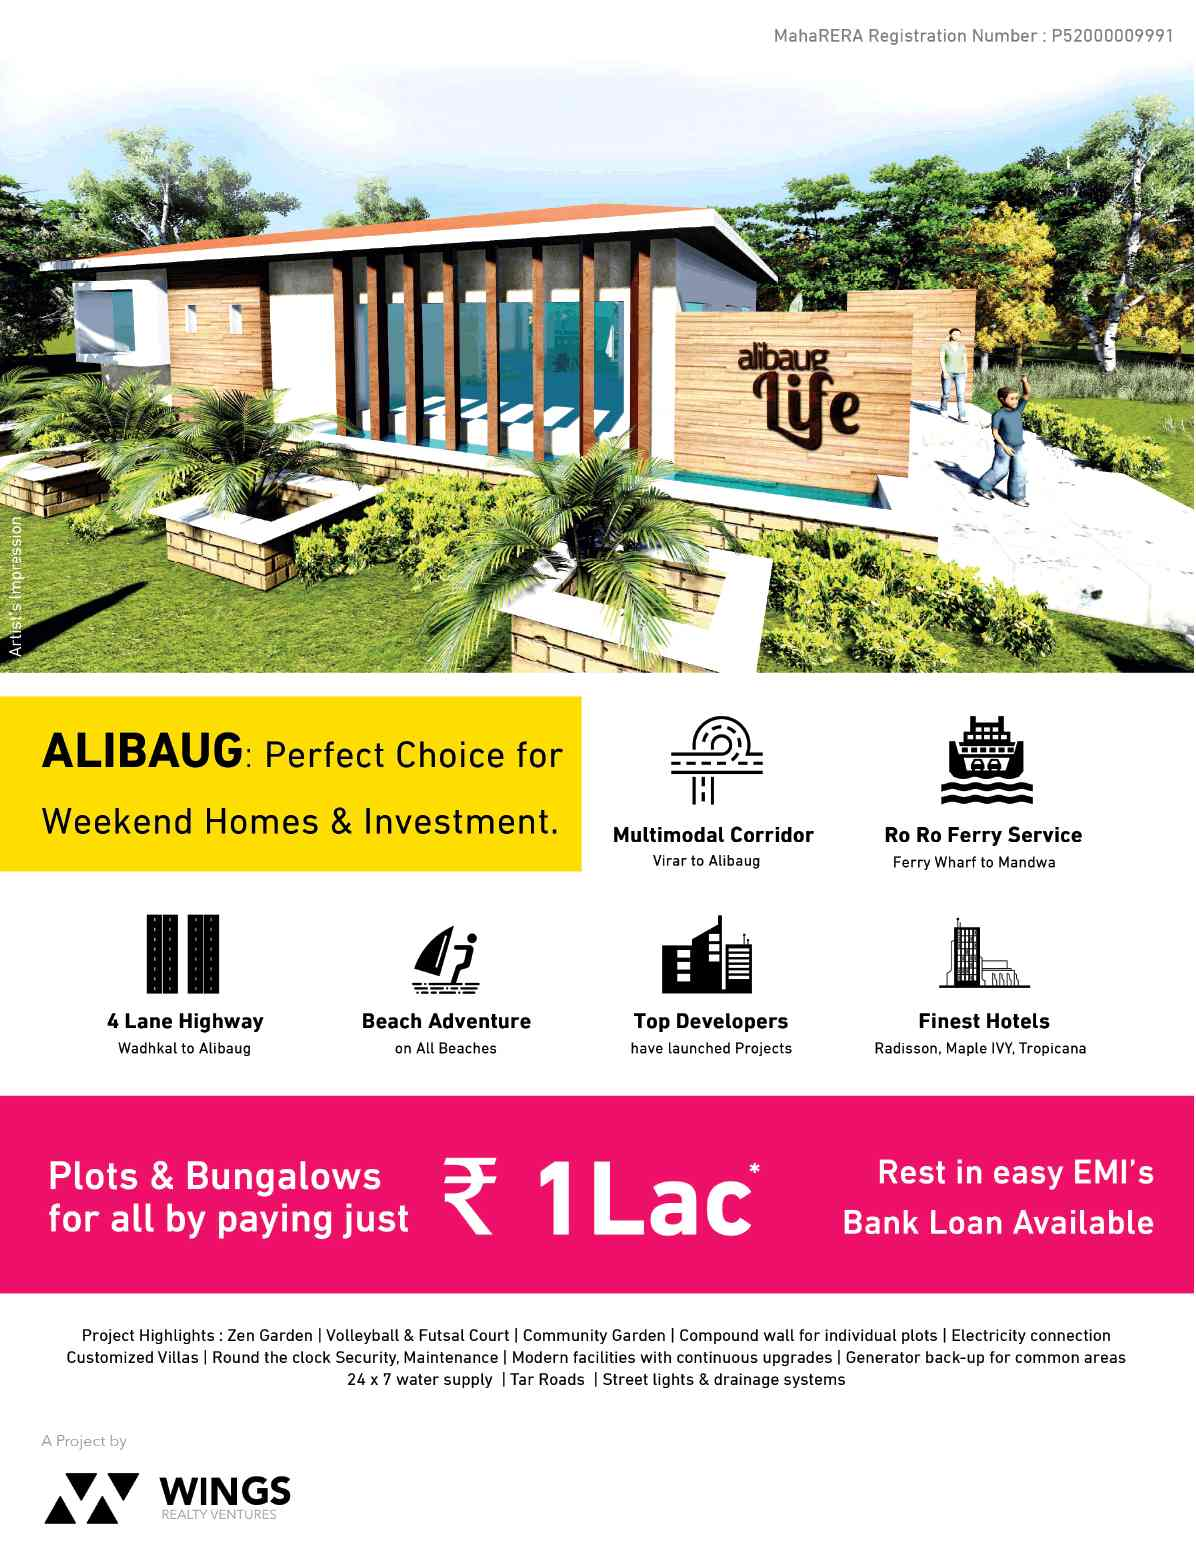 Wings Alibaug Life Is The Perfect Choice For Weekend Homes Investment In Mumbai